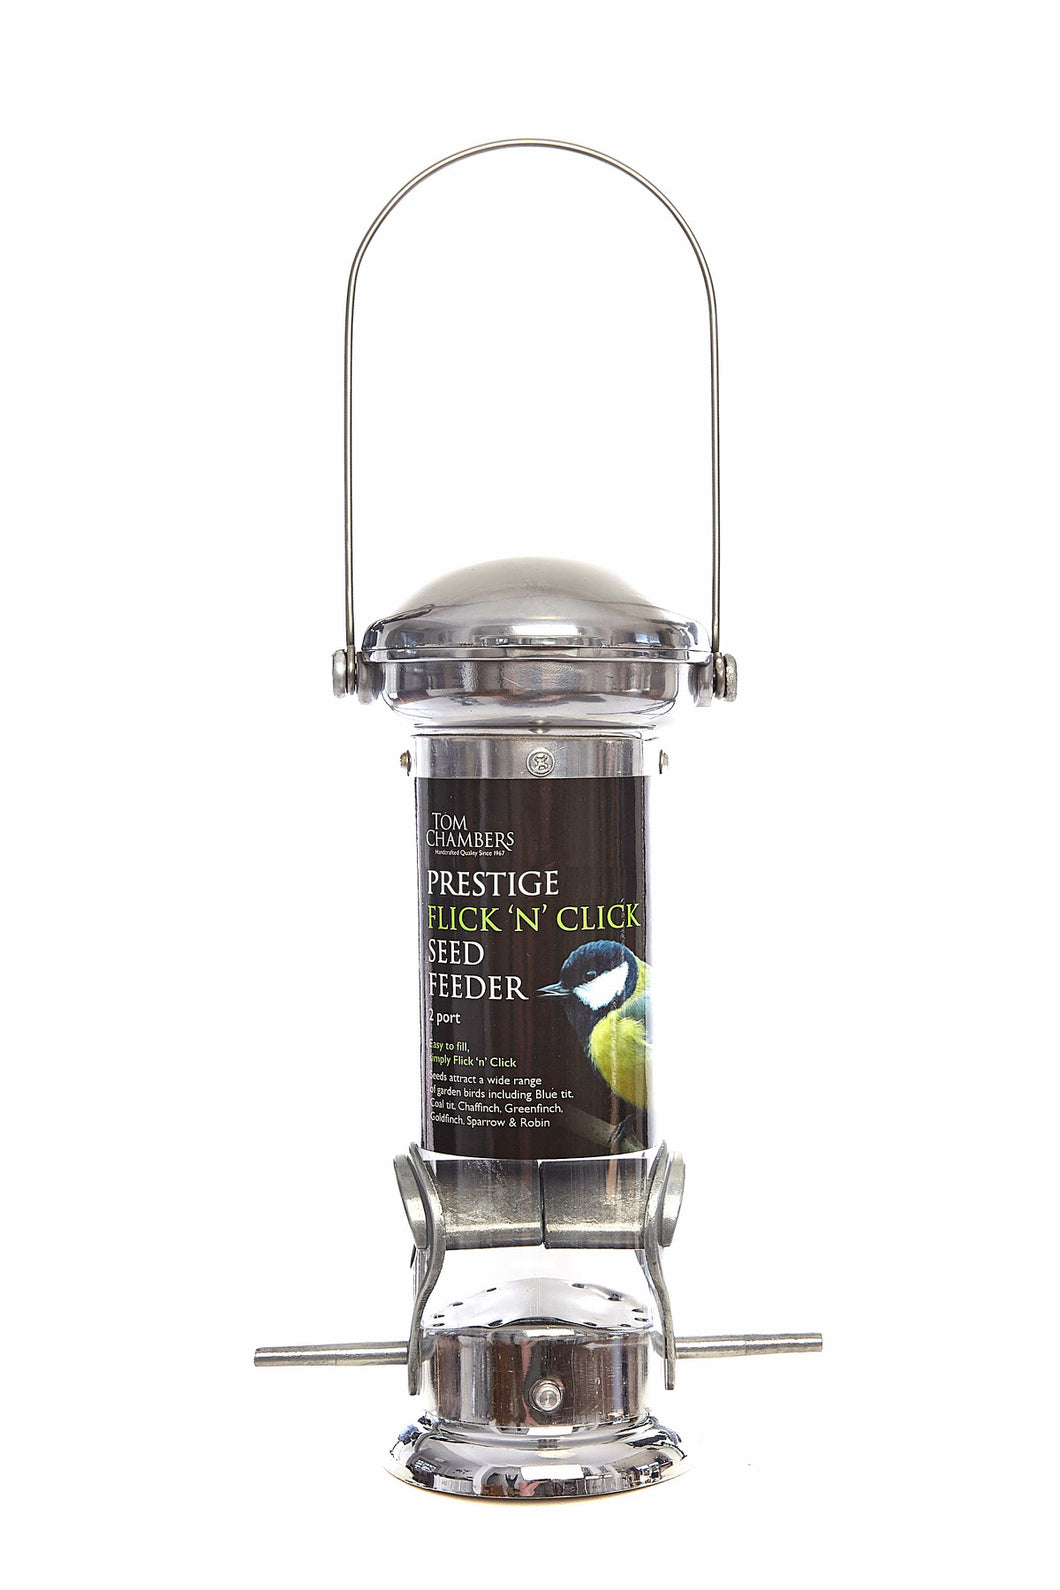 Prestige Flick 'n' Click 2 Port Seed Feeder